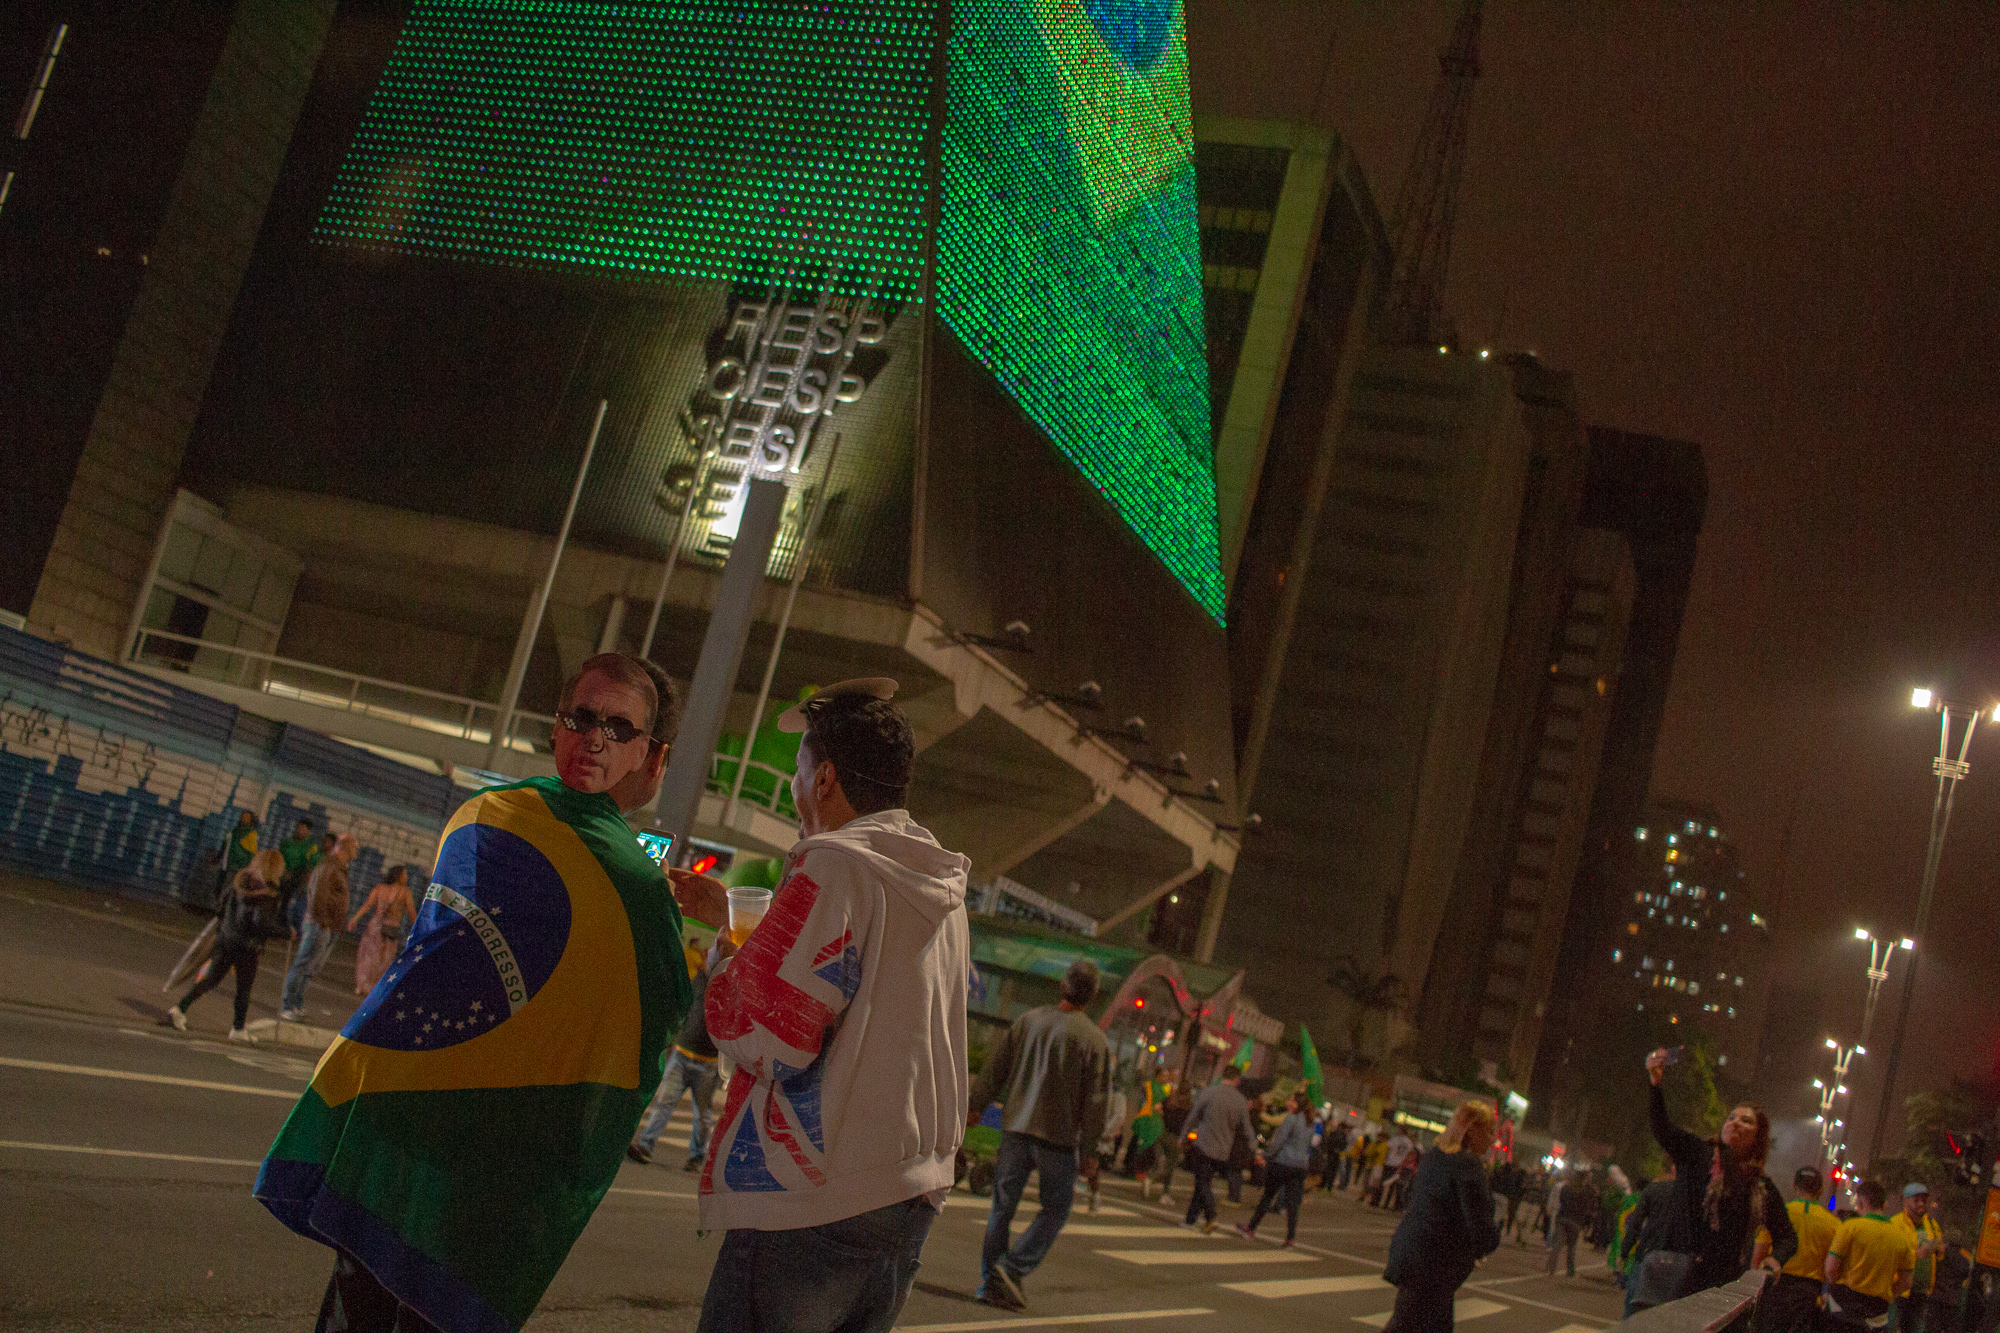 Supporters of Bolsonaro in Sao Paulo during the celebration. (Photo by Léu Britto/DiCampana/GroundTruth)